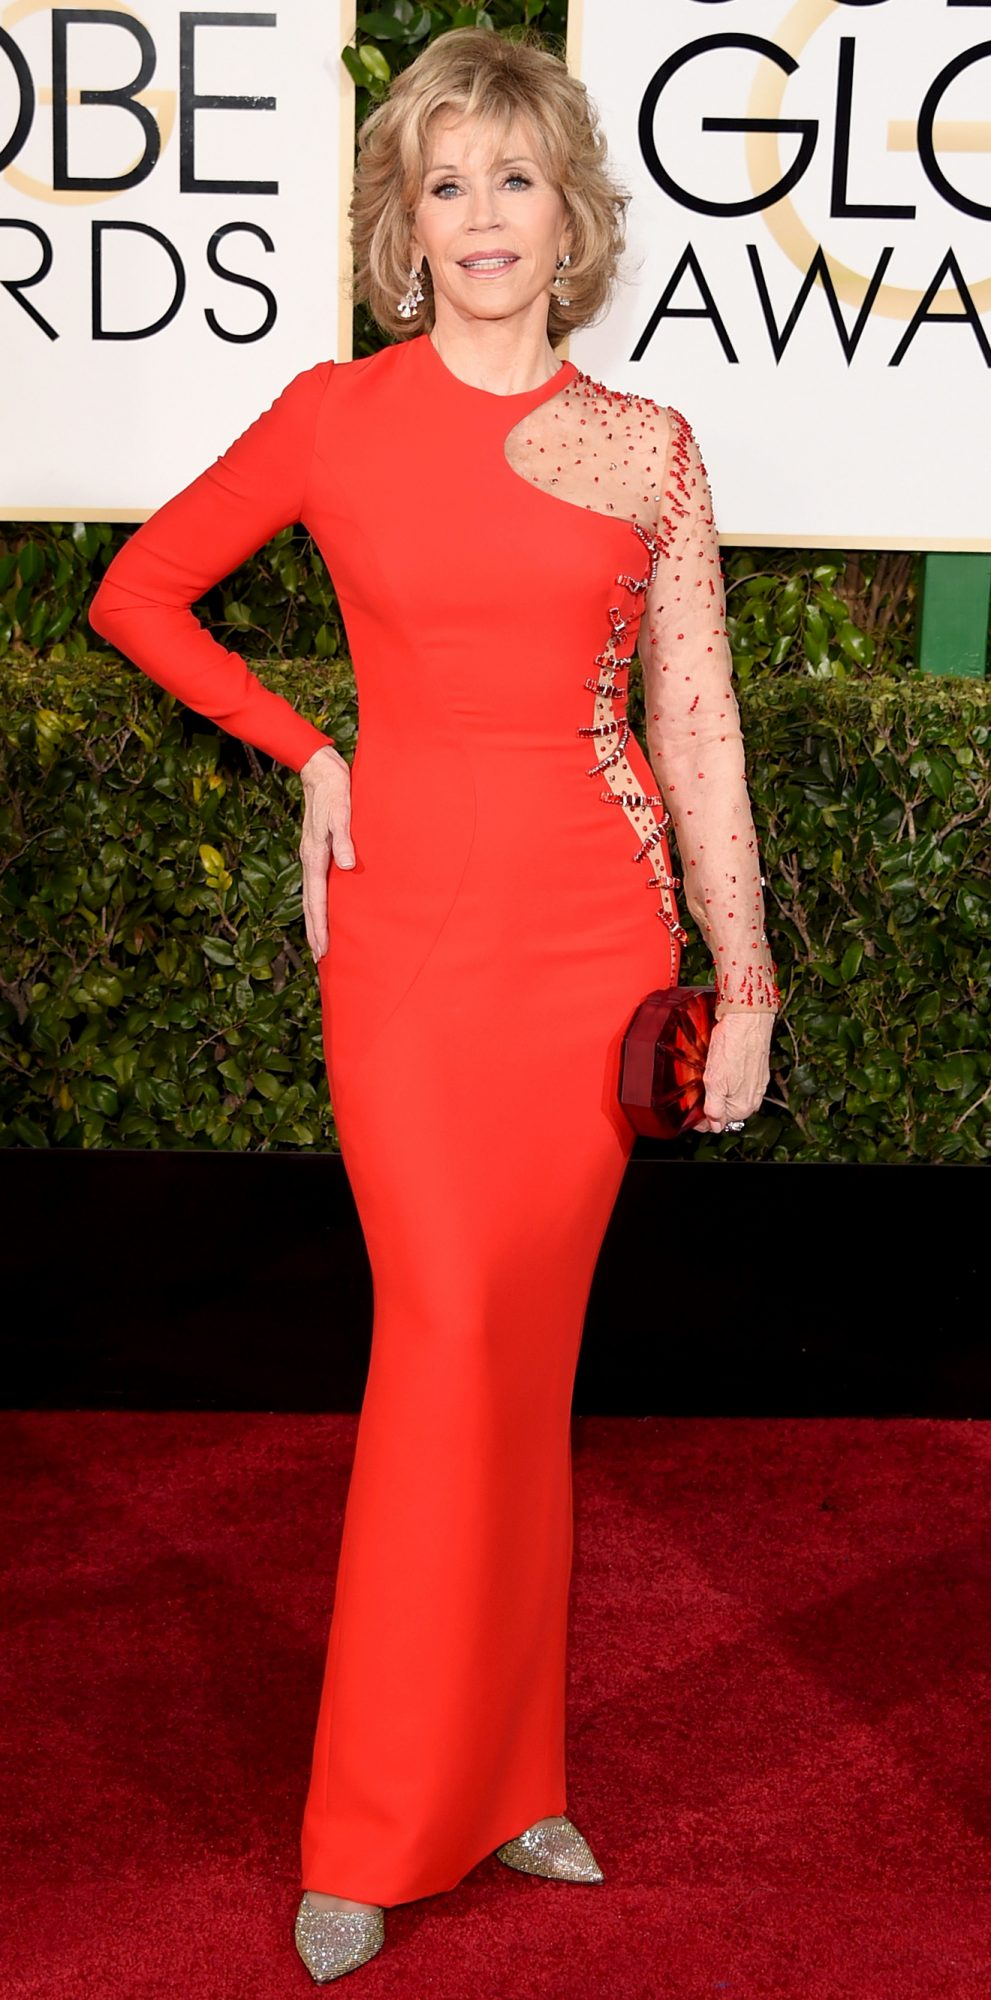 At the Golden Globe Awards